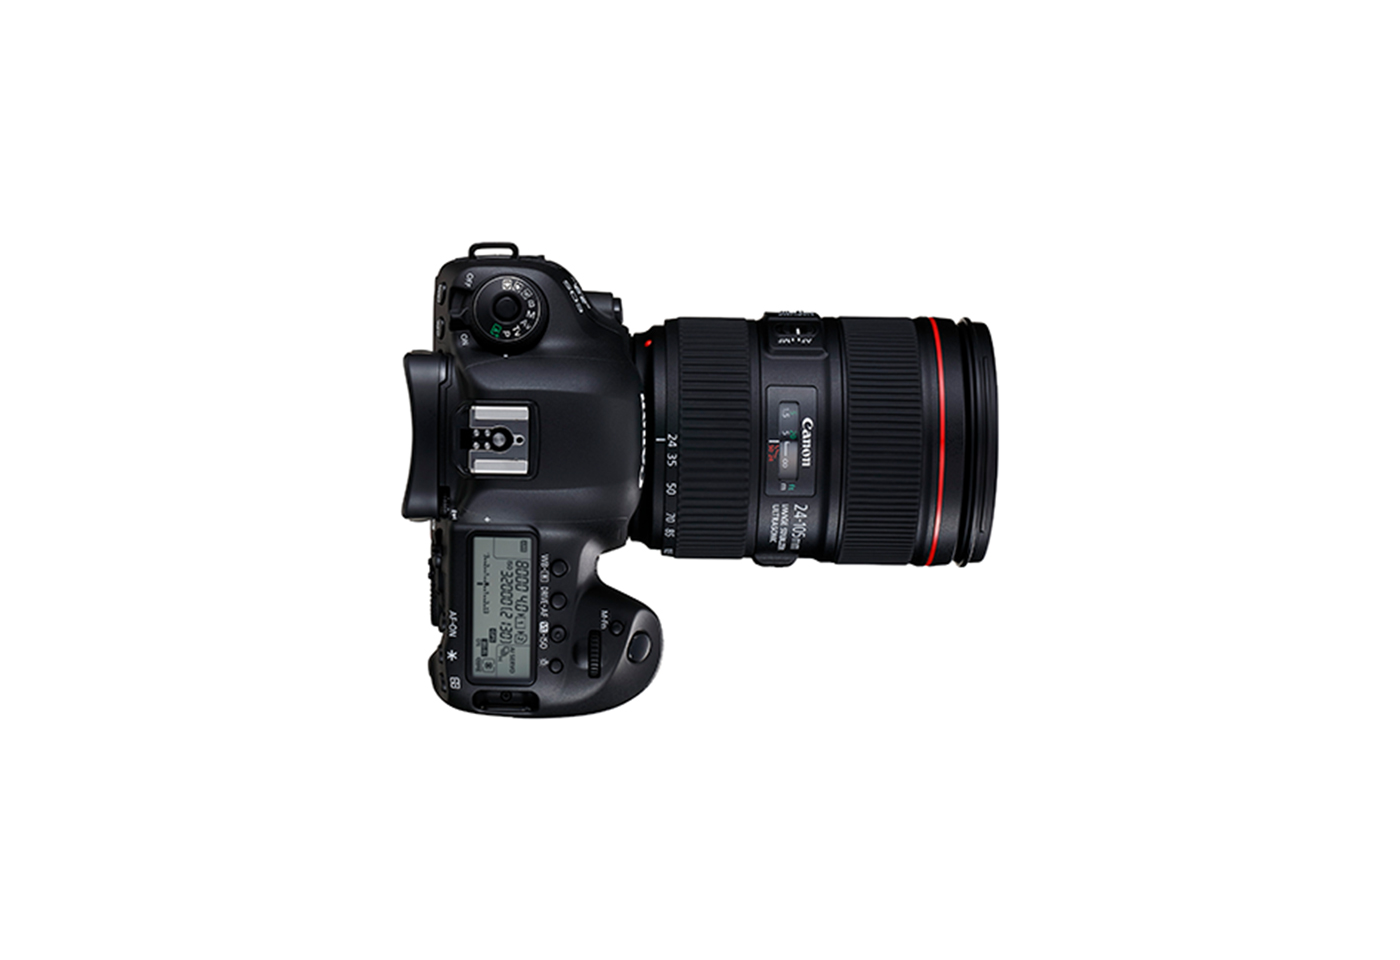 Product image of Canon DSLR for video shooting